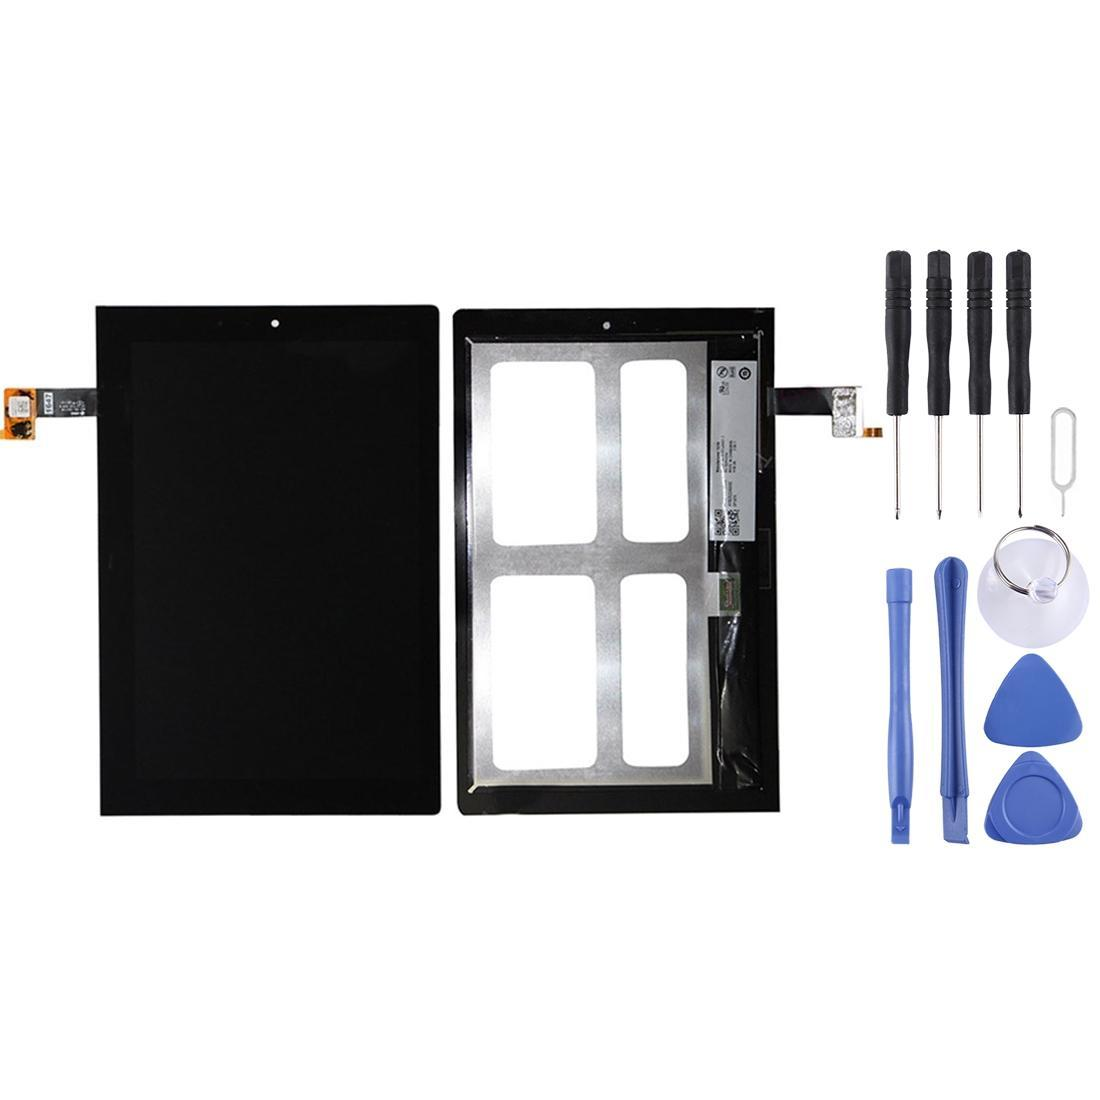 LCD Screen and Digitizer Full Assembly for Lenovo Yoga Tablet 2 / 1051 / 1051F